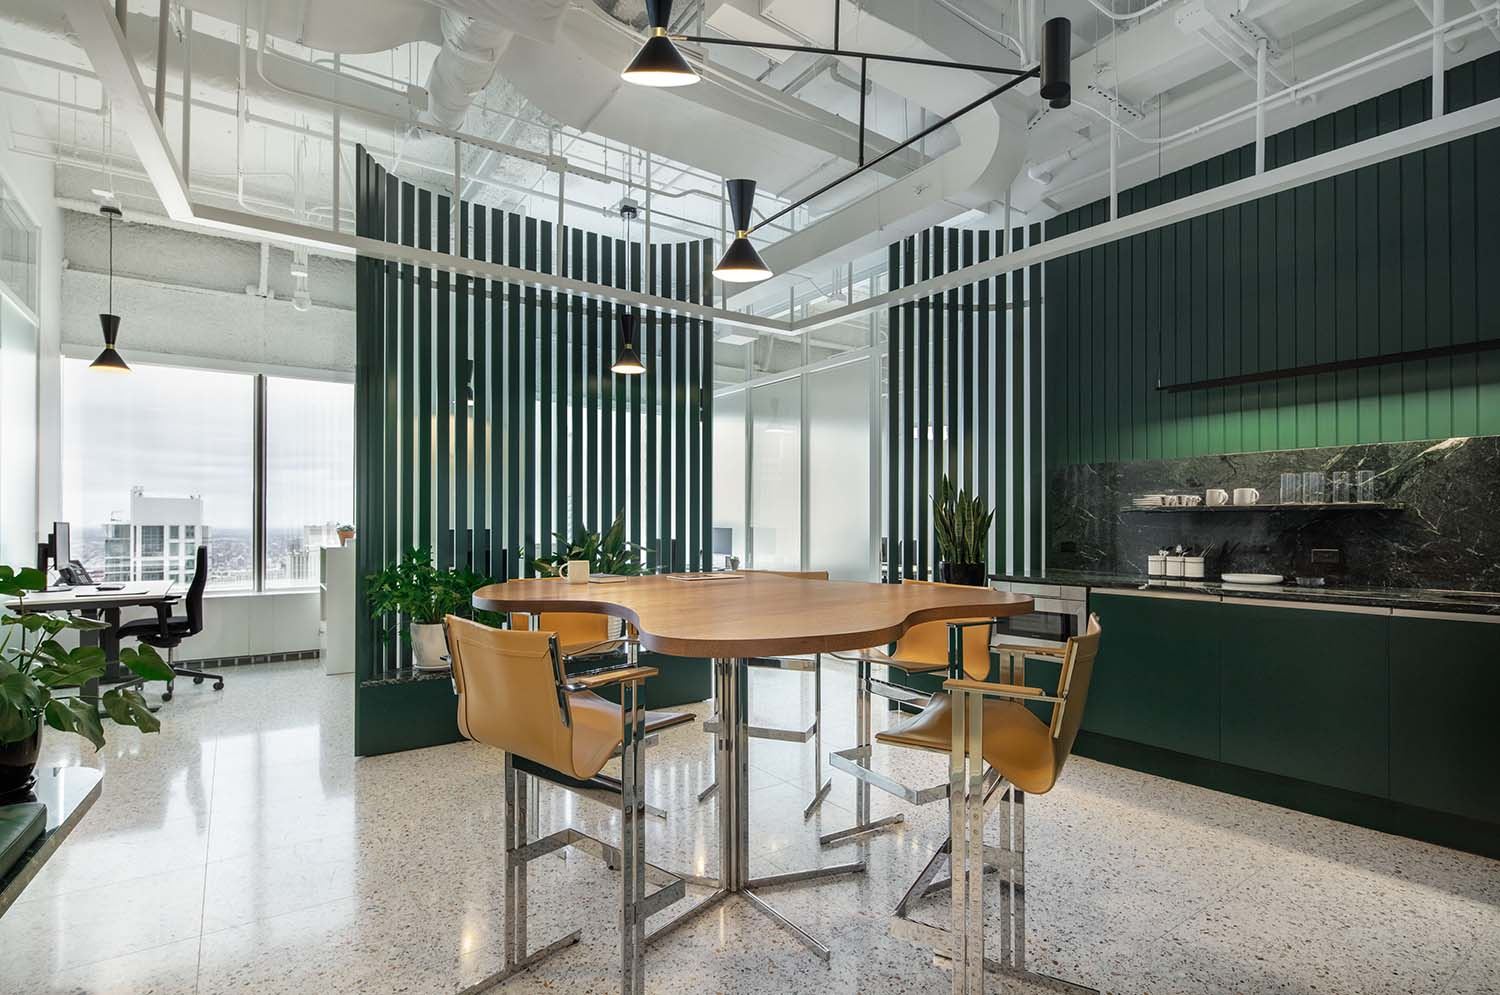 Consulate General of Switzerland Chicago by HHF and Kwong Von Glinow